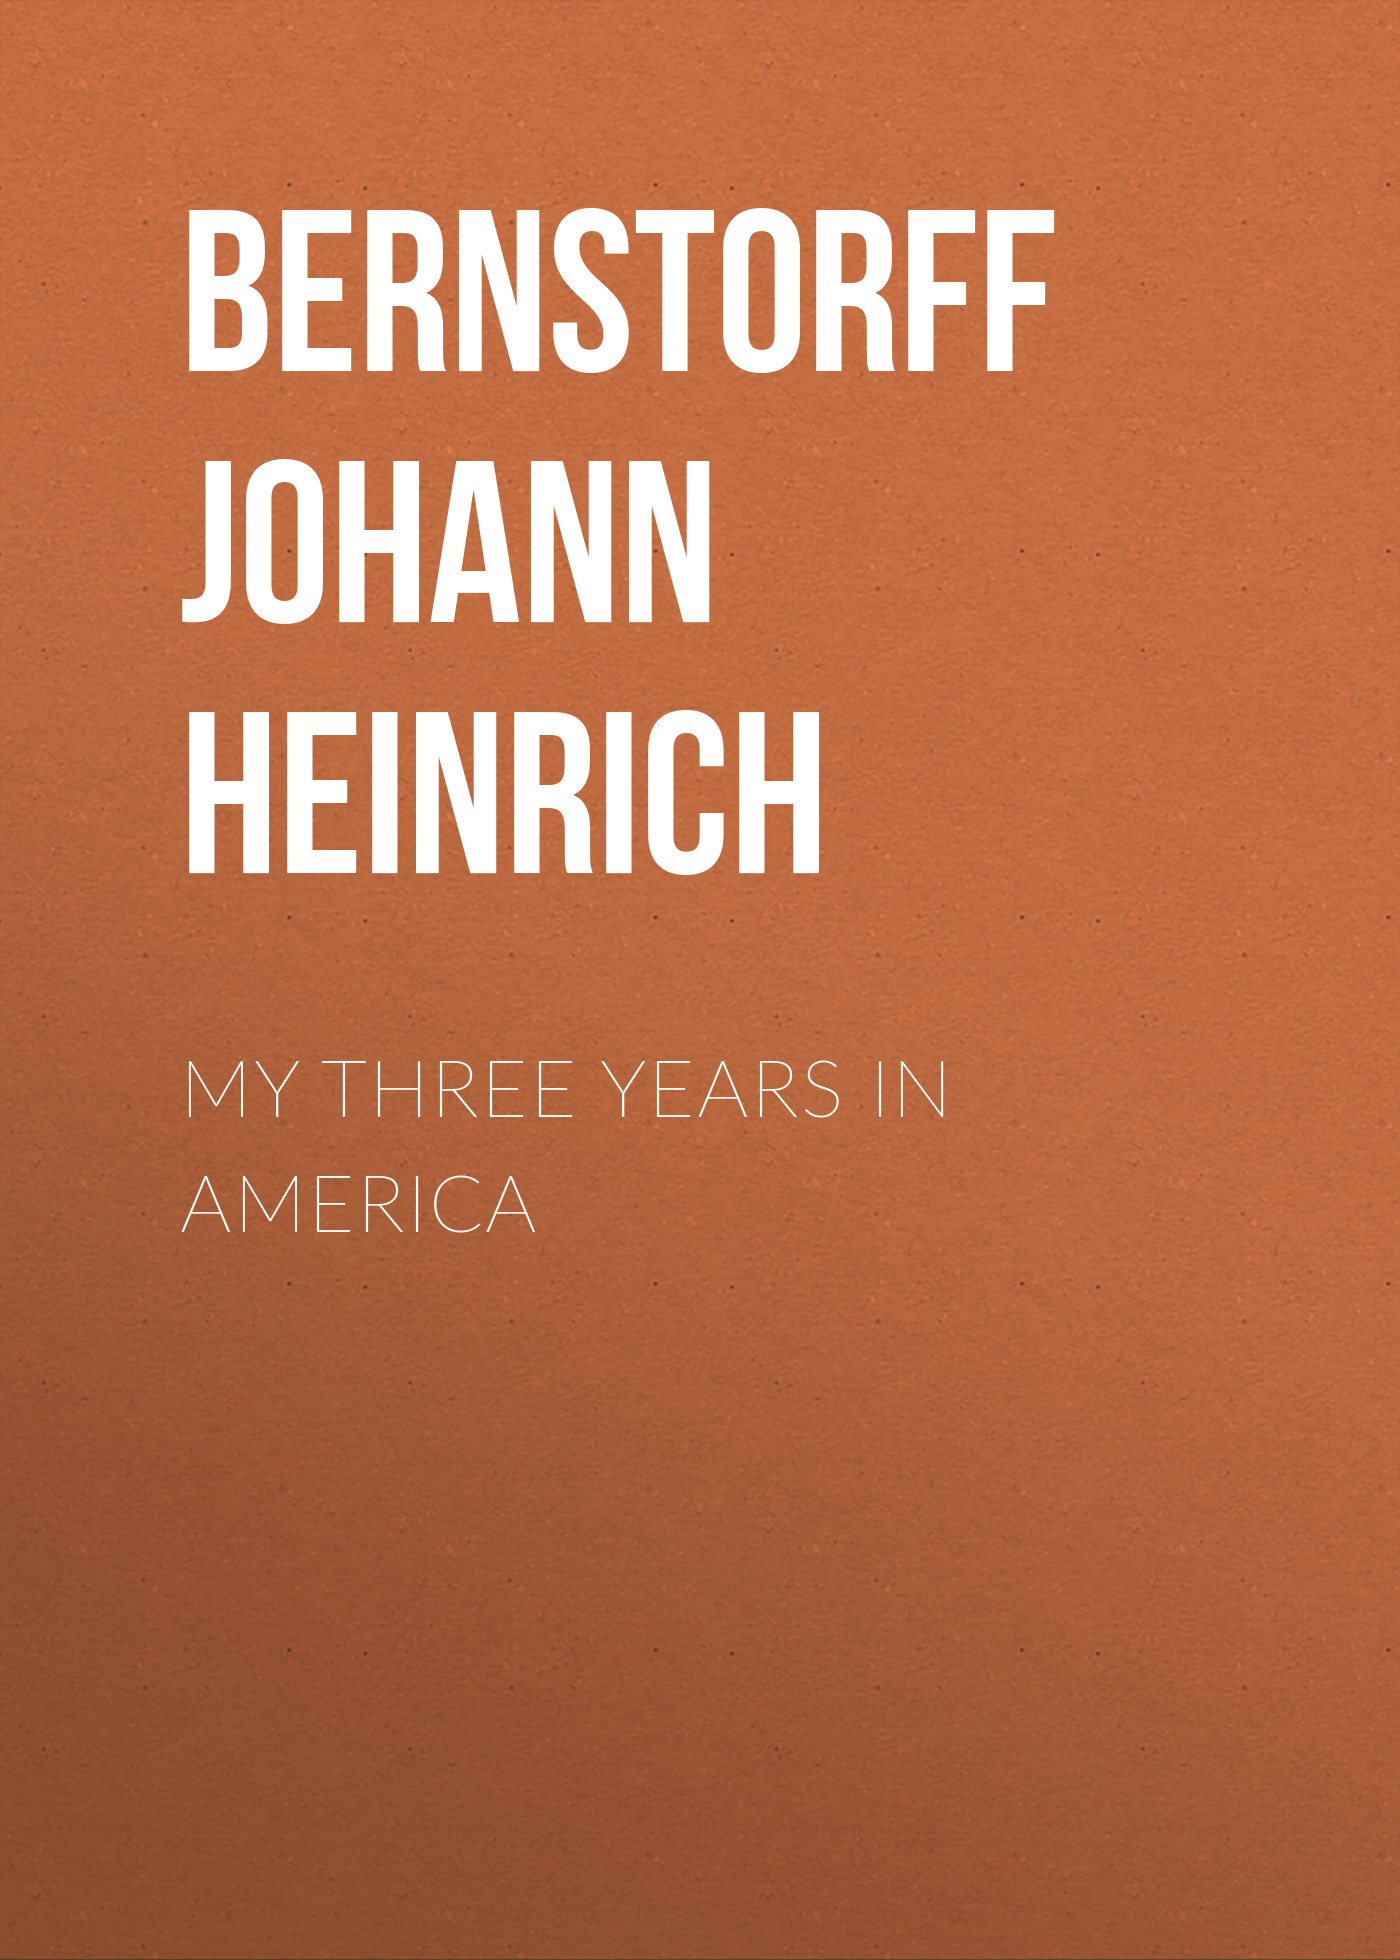 Bernstorff Johann Heinrich My Three Years in America